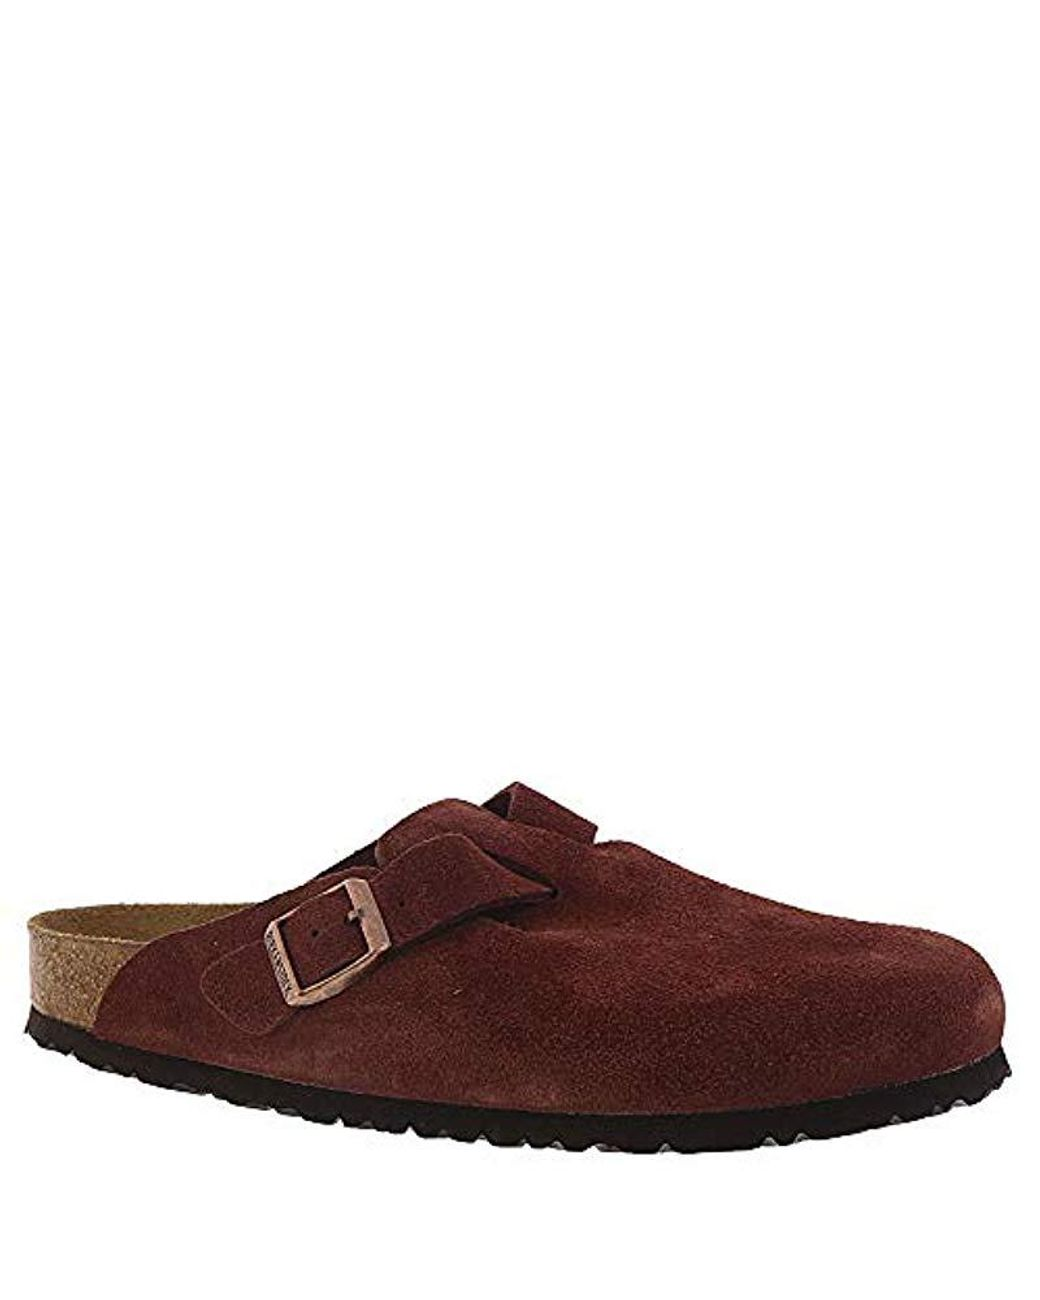 cheap for discount new collection timeless design Birkenstock Unisex Boston Soft Footbed Leather Clog in Brown ...